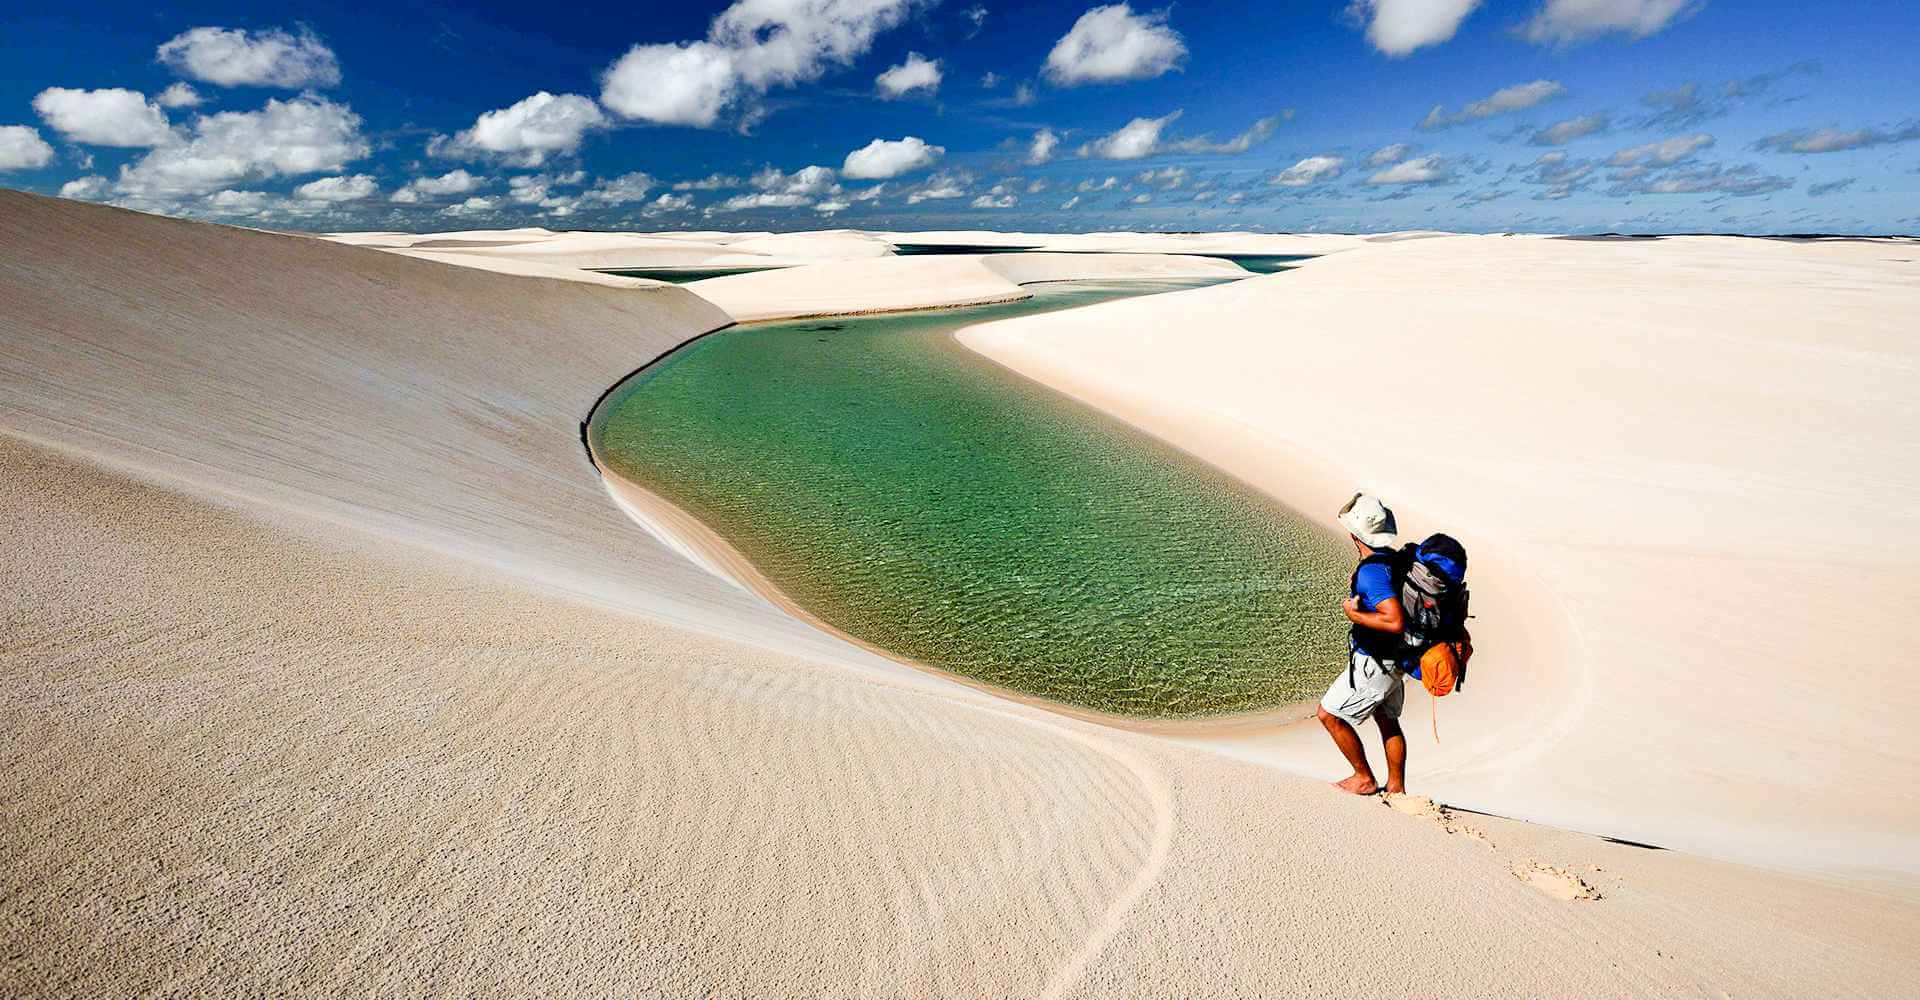 A man enjoying the scenery of the sand dunes in Atins